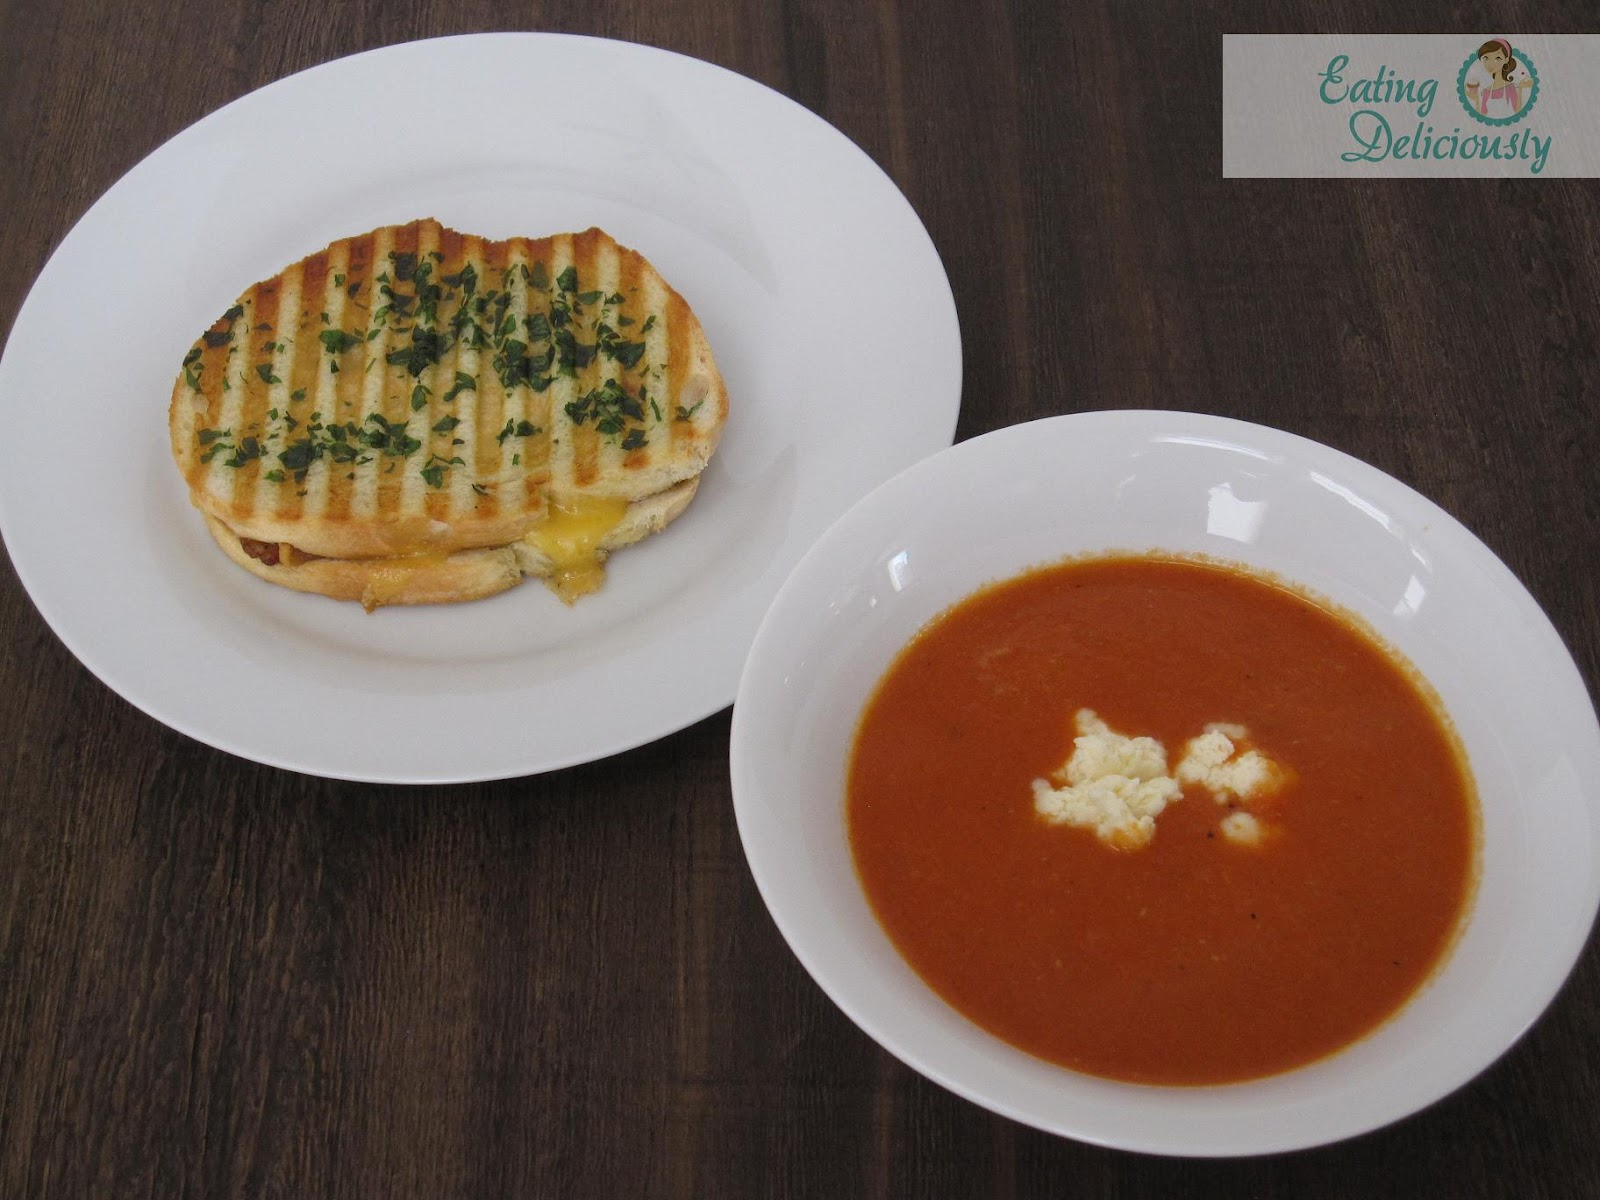 Eating Deliciously: Roasted Tomato Soup